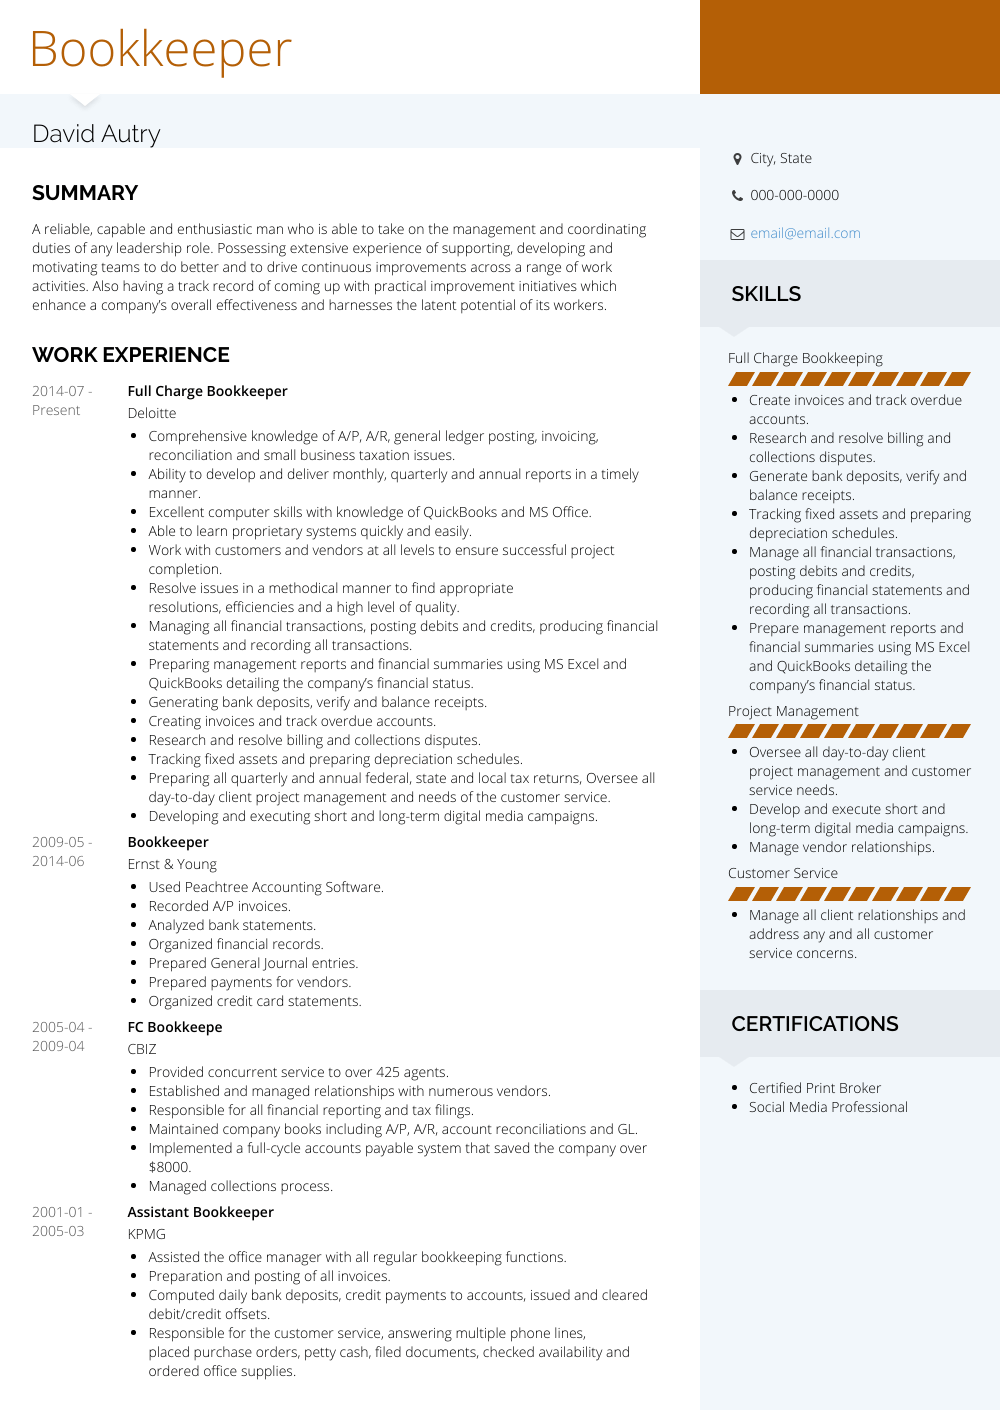 Full Charge Bookkeeper Resume Sample and Template